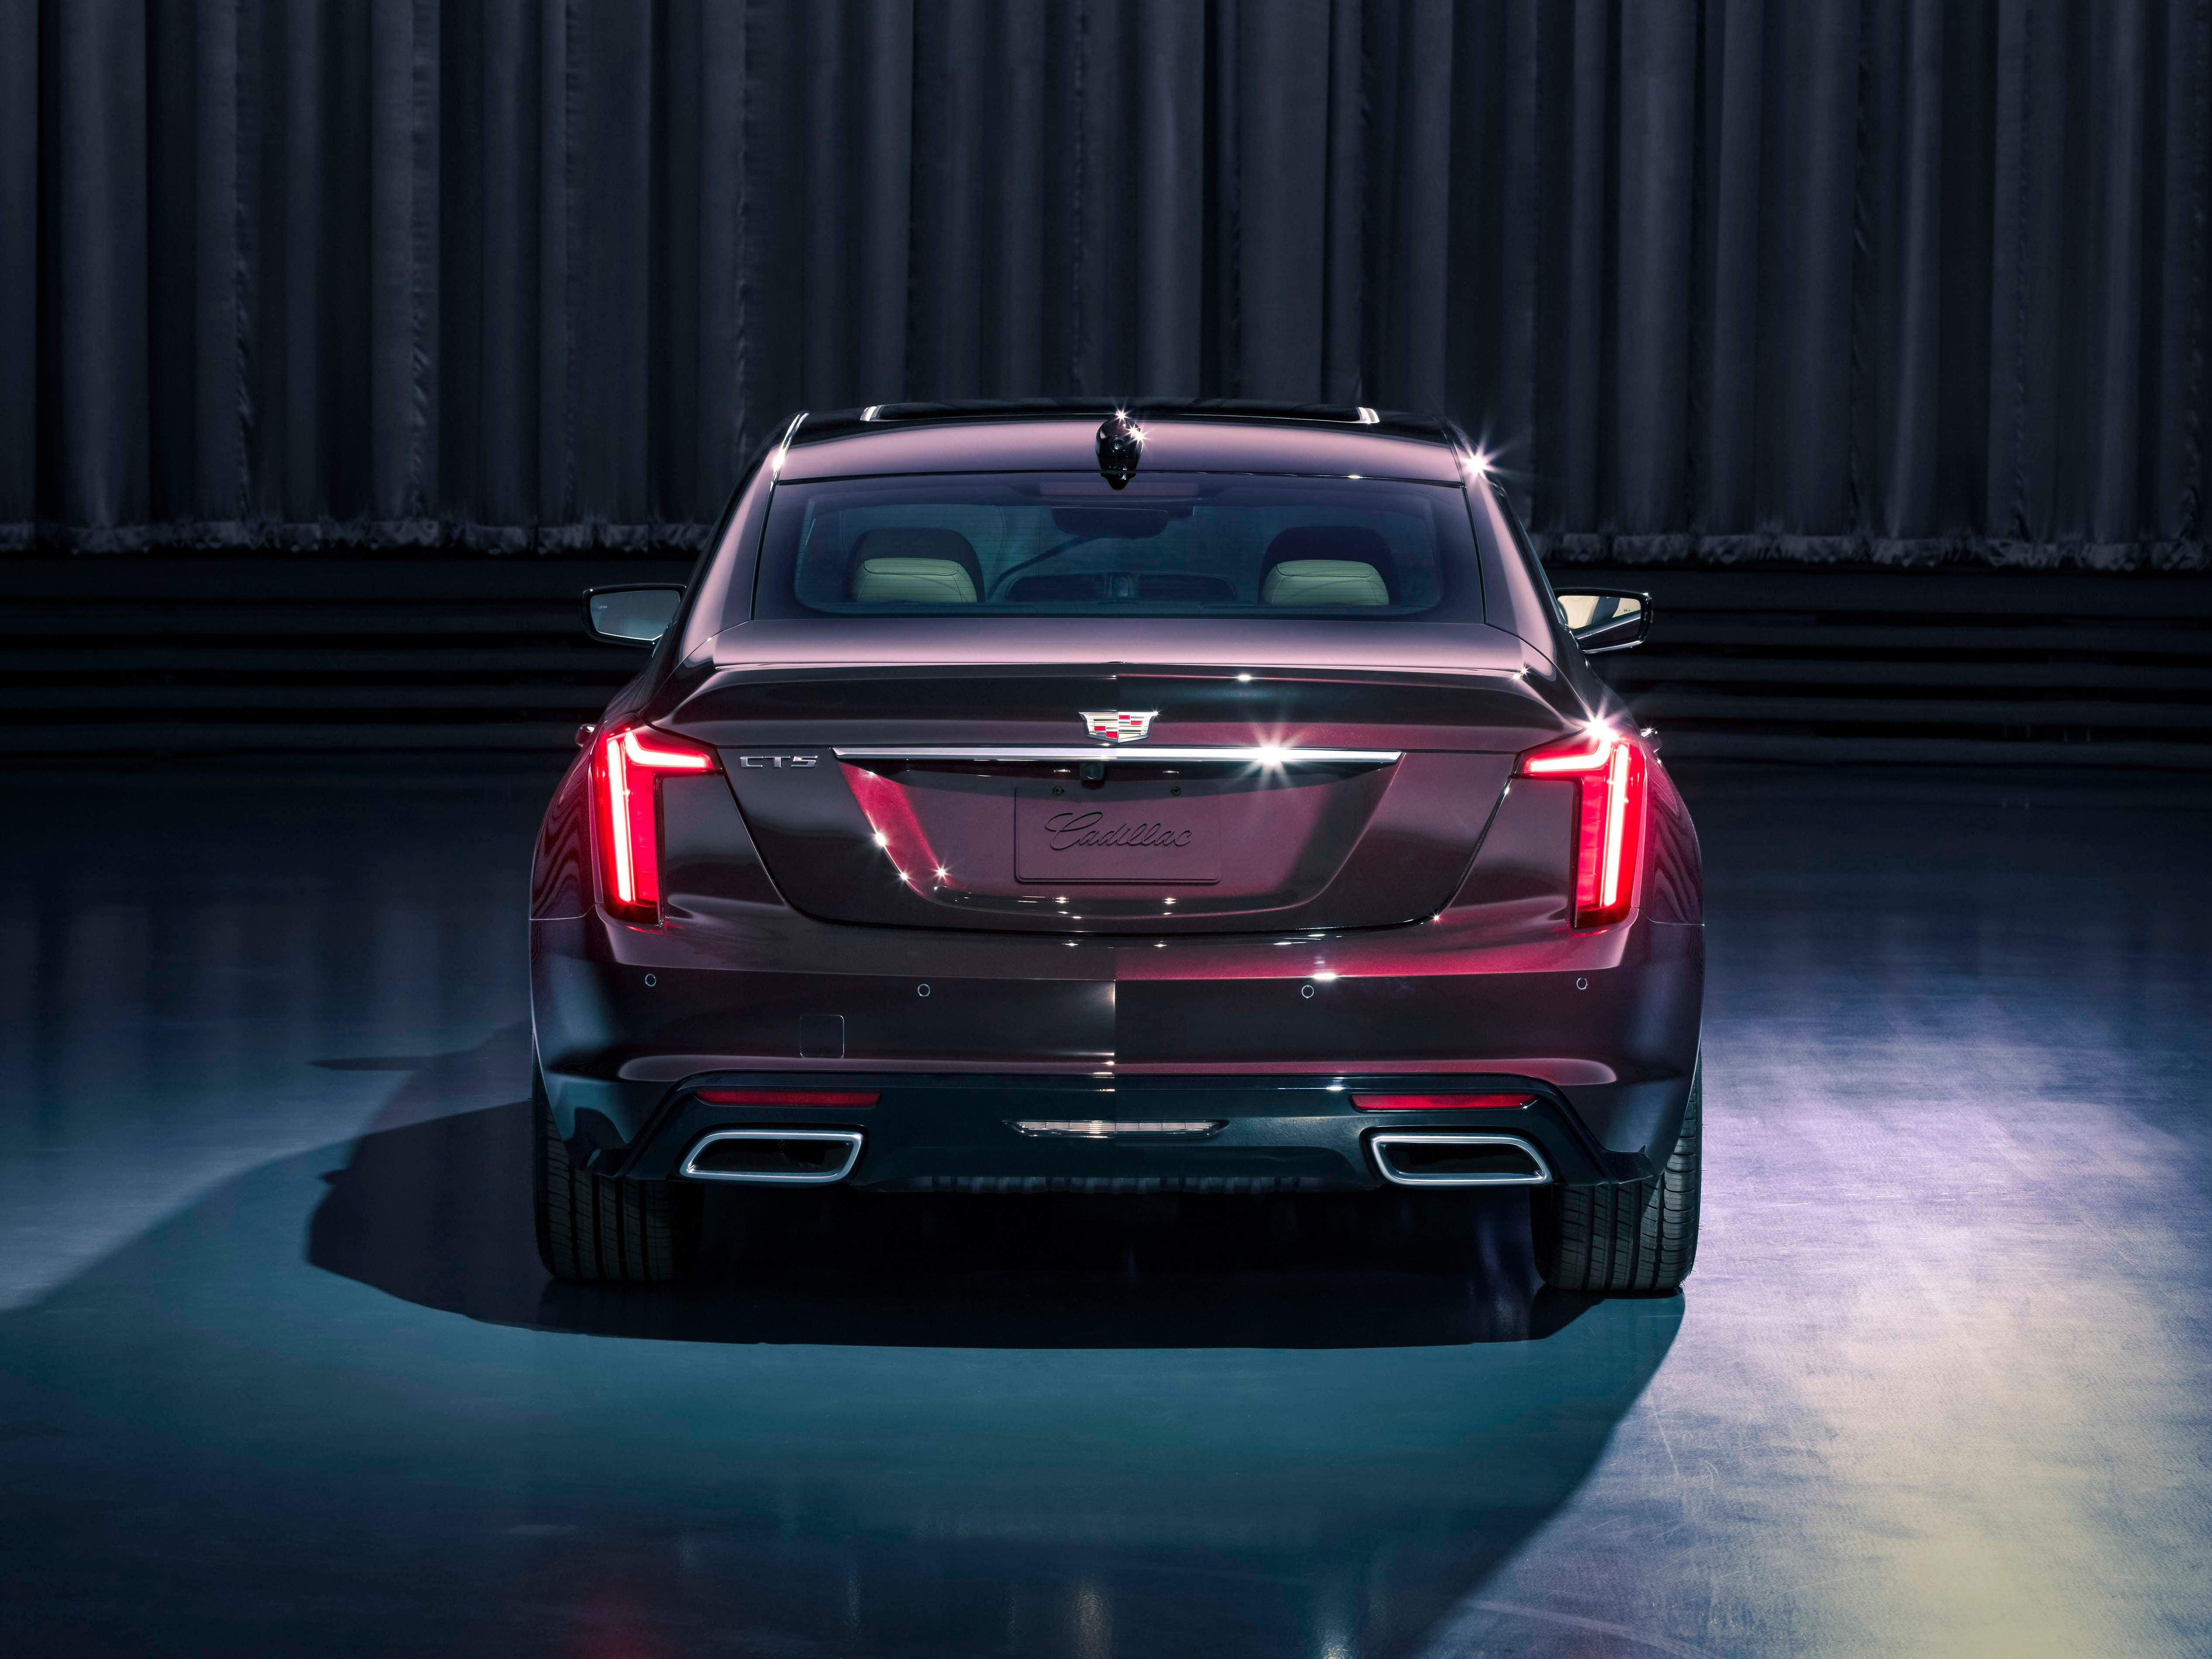 The rear of the 2020 Cadillac CT5 adopts a vertical light signature similar to the XT6 SUV that debuted at the 2019 Detroit Auto Show.